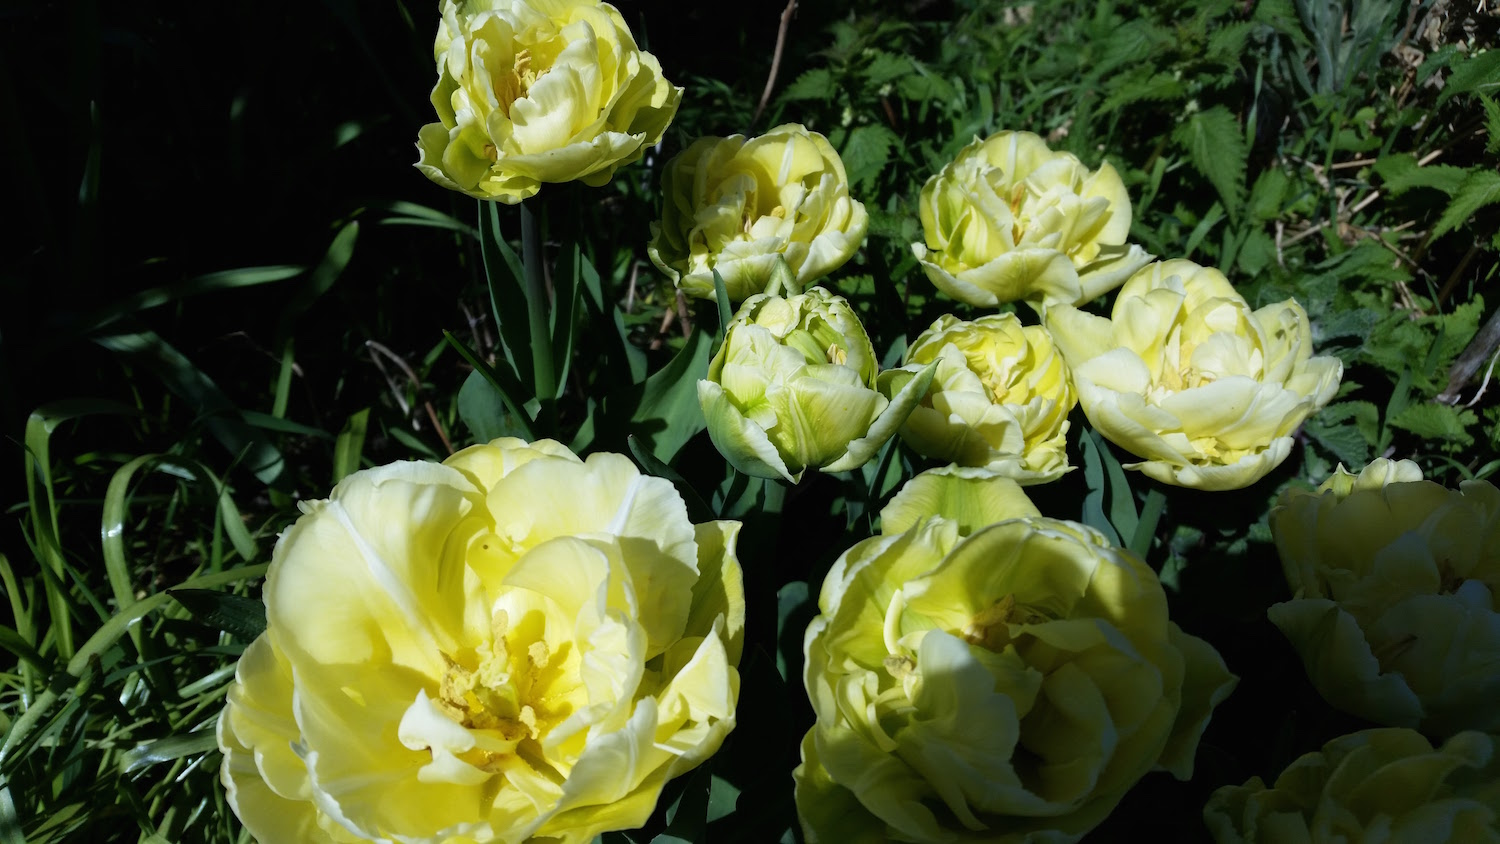 Creamy double tulips almost look like peonies